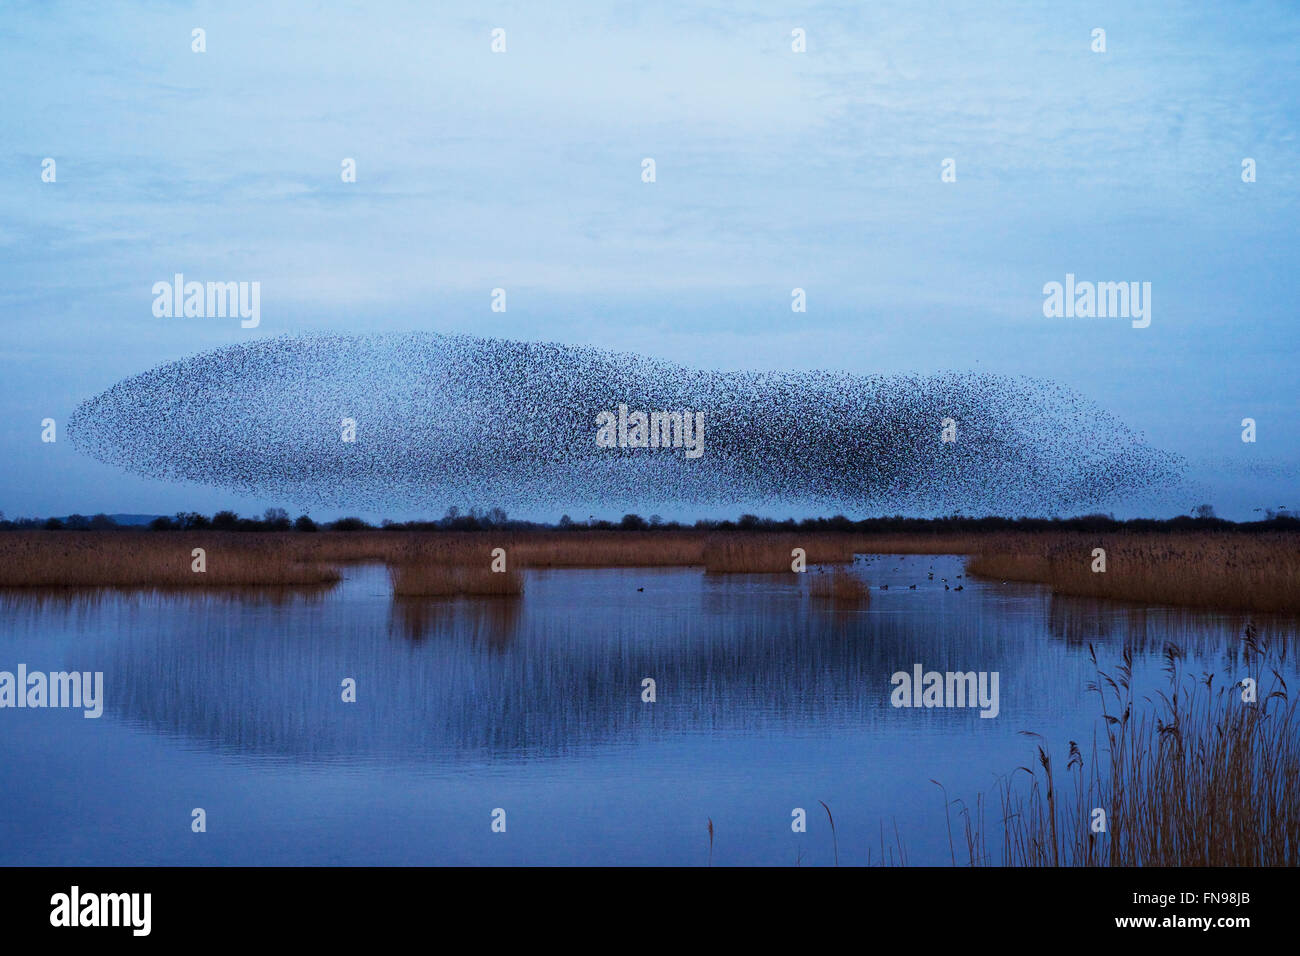 A murmuration of starlings, a spectacular aerobatic display of a large number of birds in flight at dusk over the Stock Photo